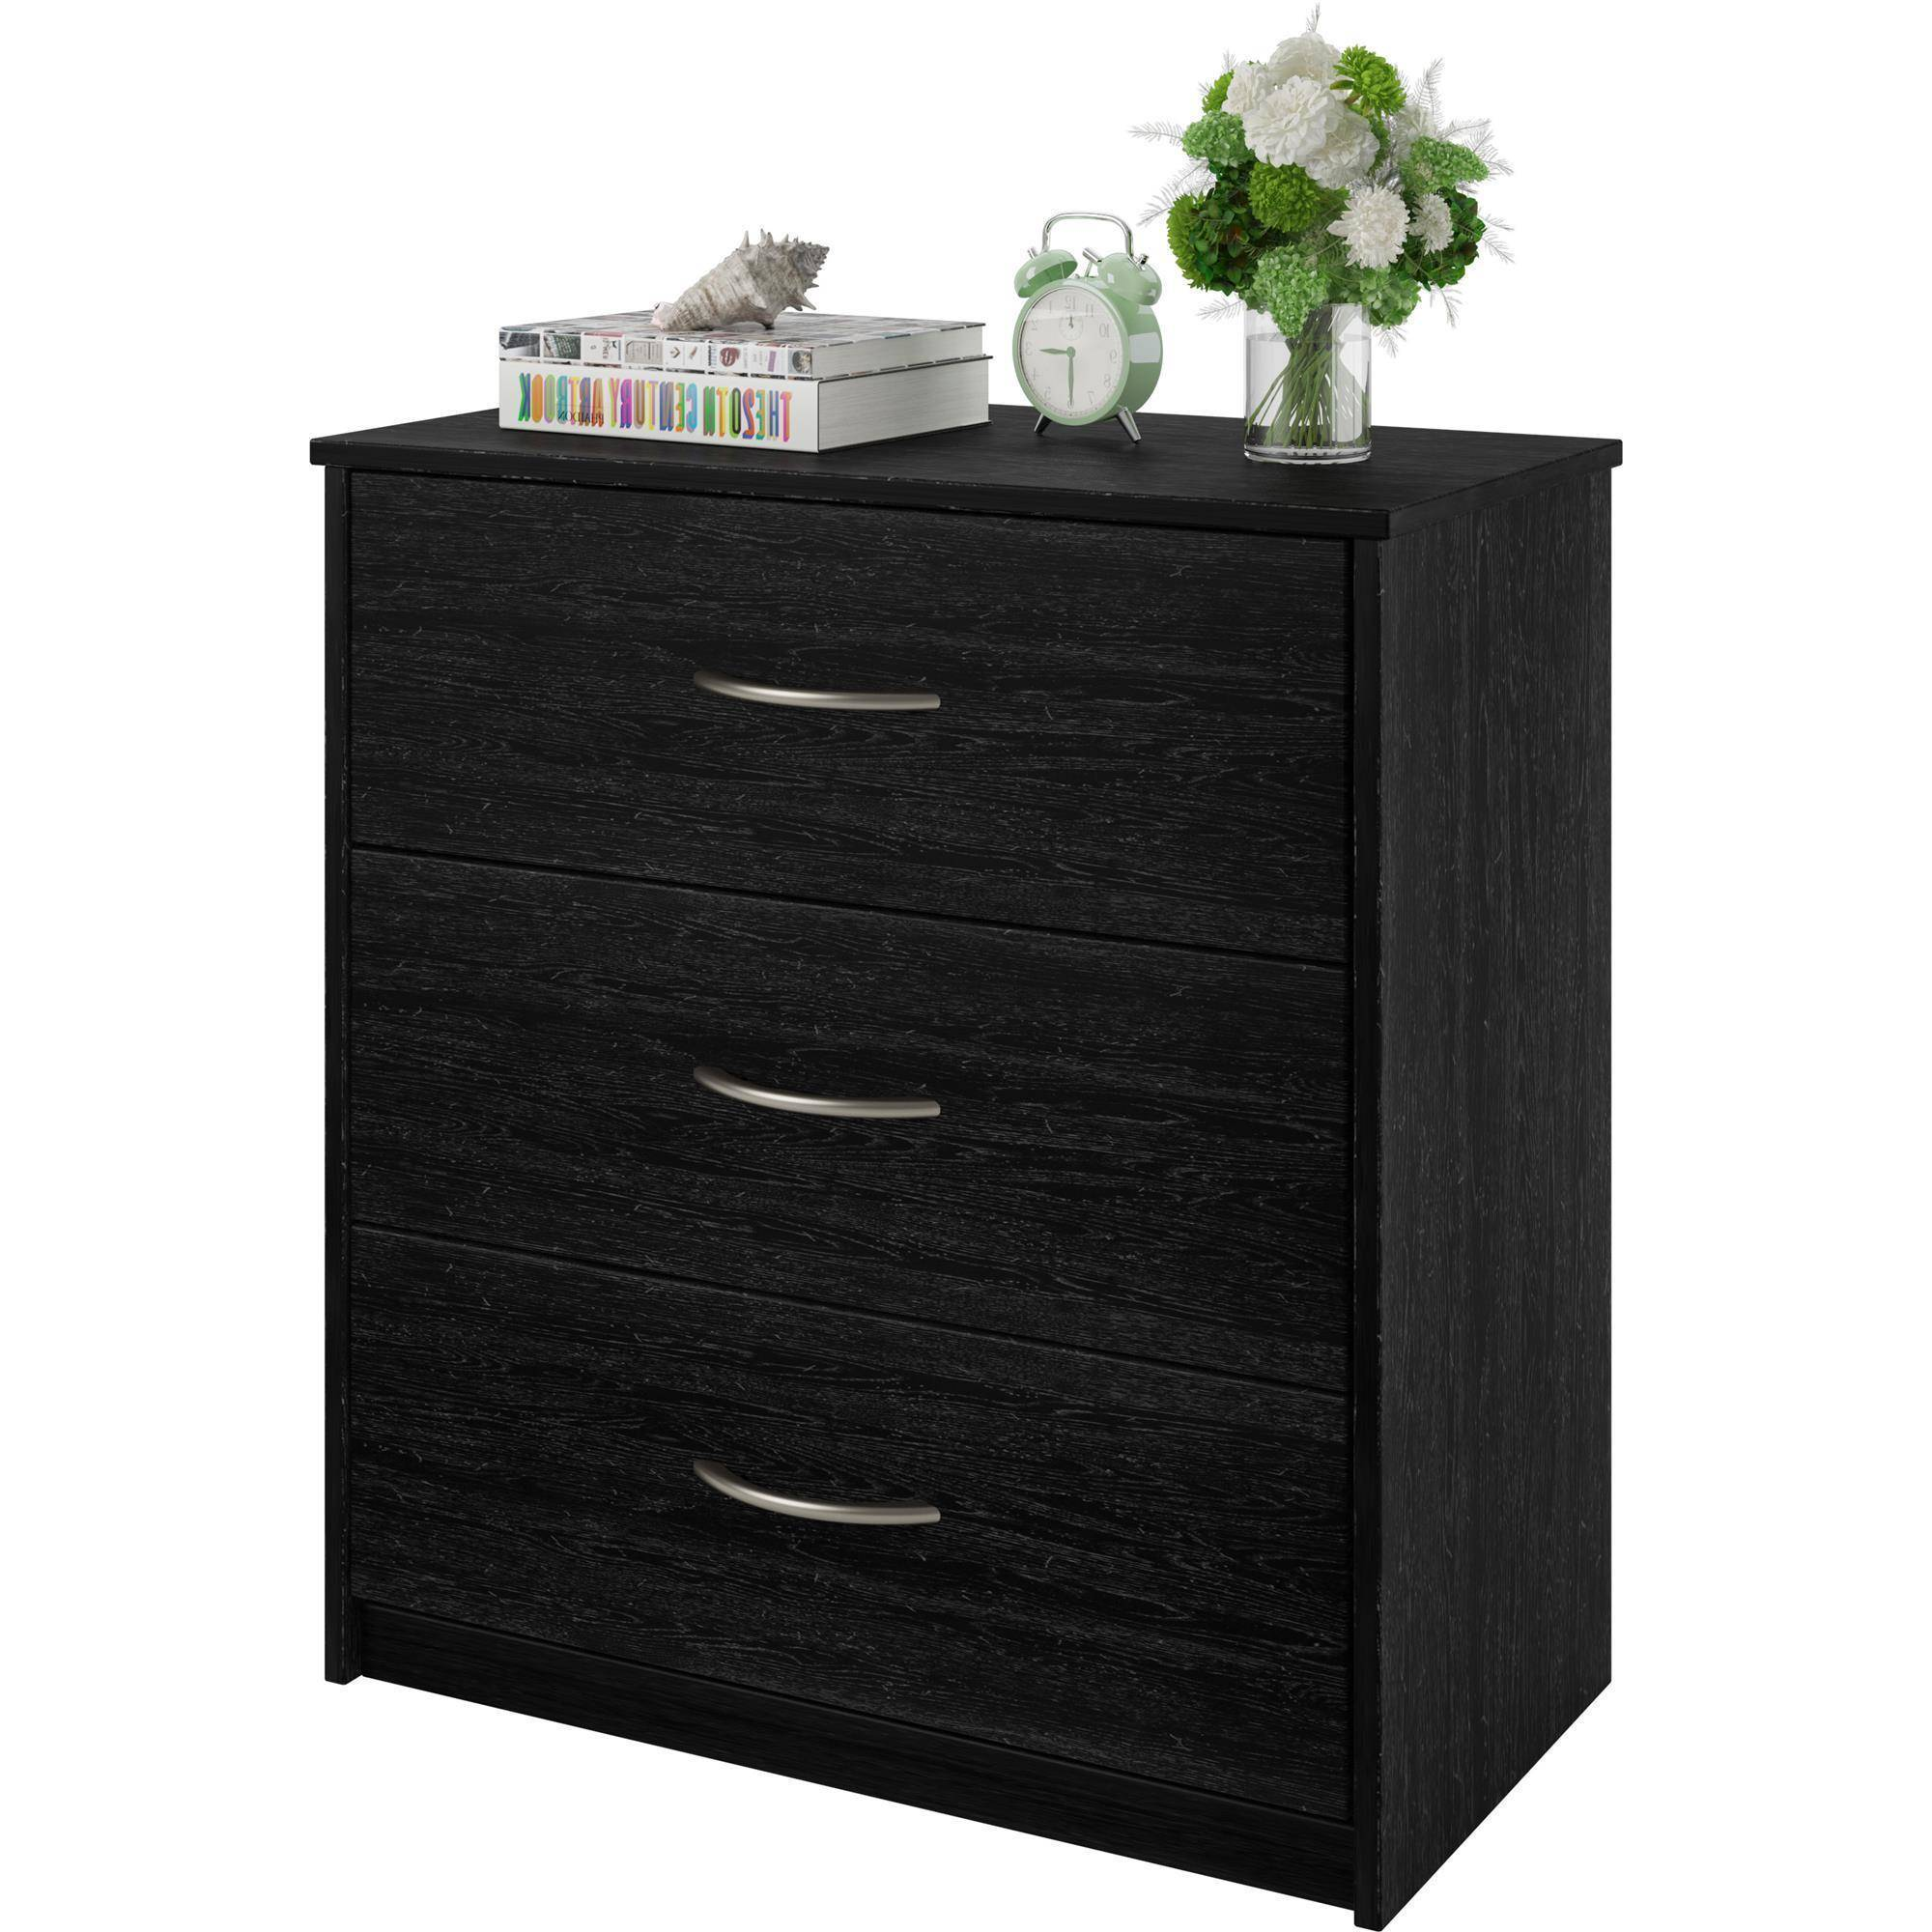 3 Drawer Dresser Chest Bedroom Furniture Black Brown. 3 Drawer Dresser Chest Bedroom Furniture Black Brown White Storage